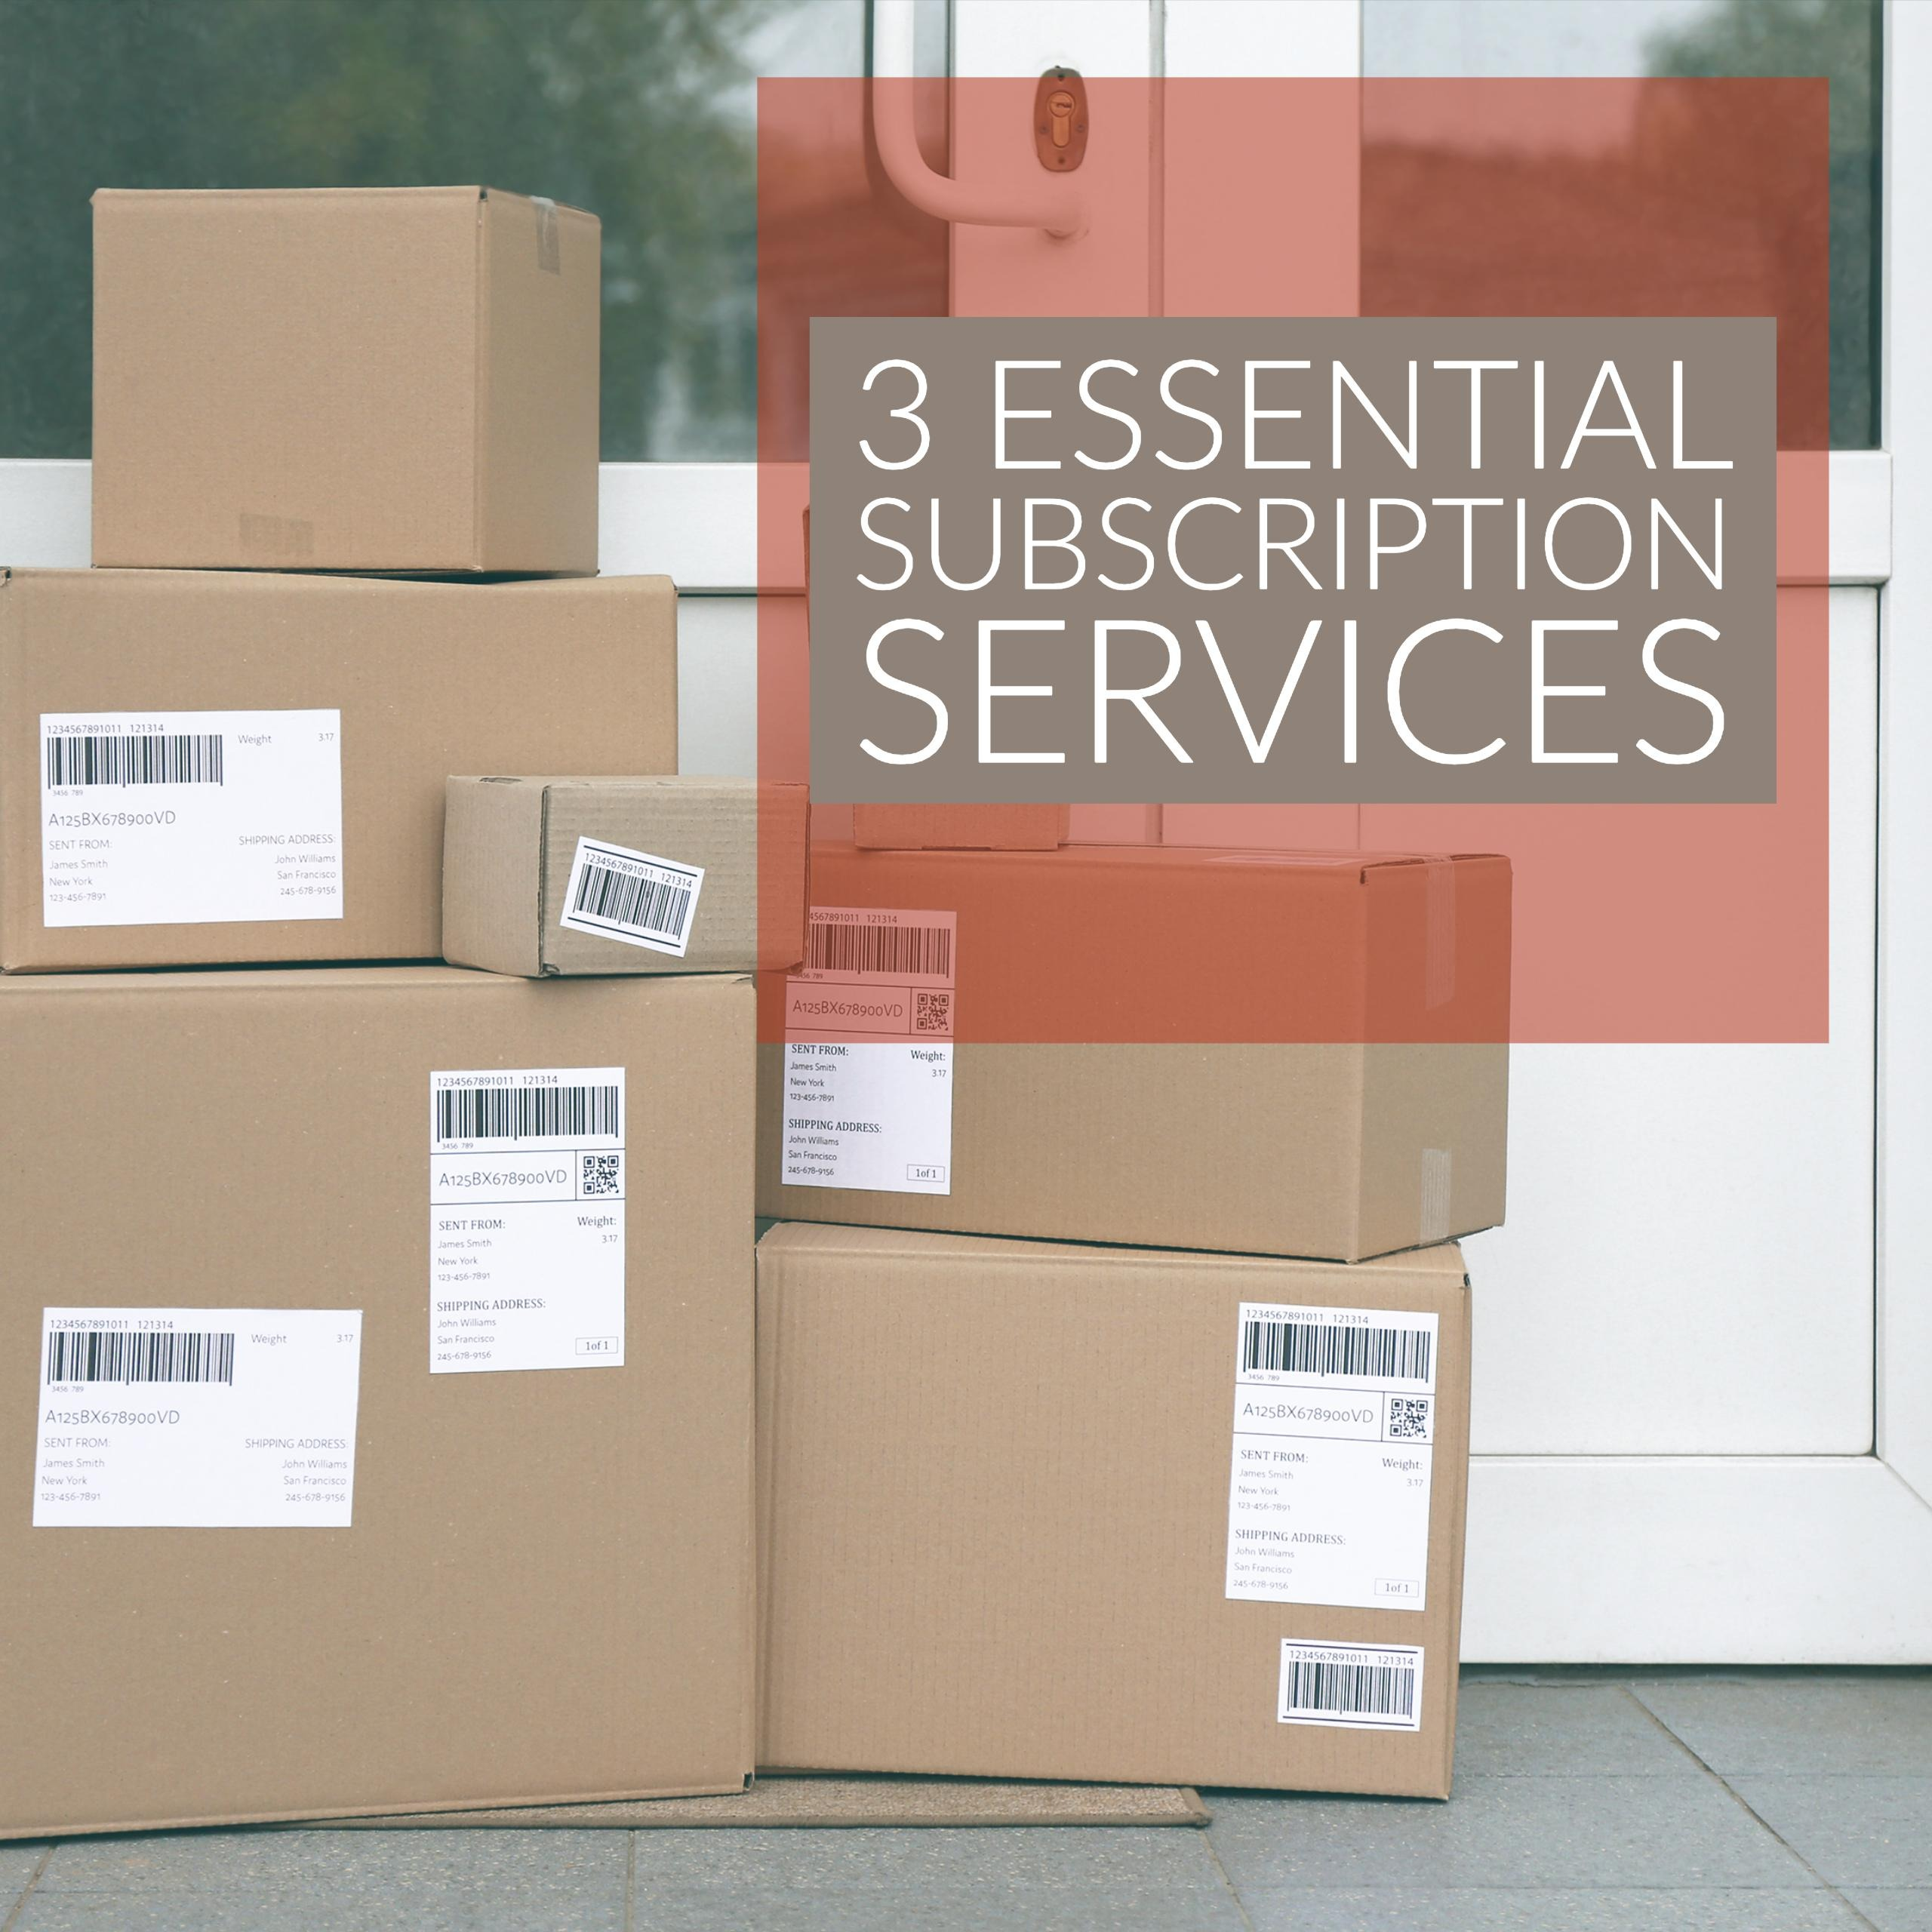 3 Essential Subscription Services That I Use